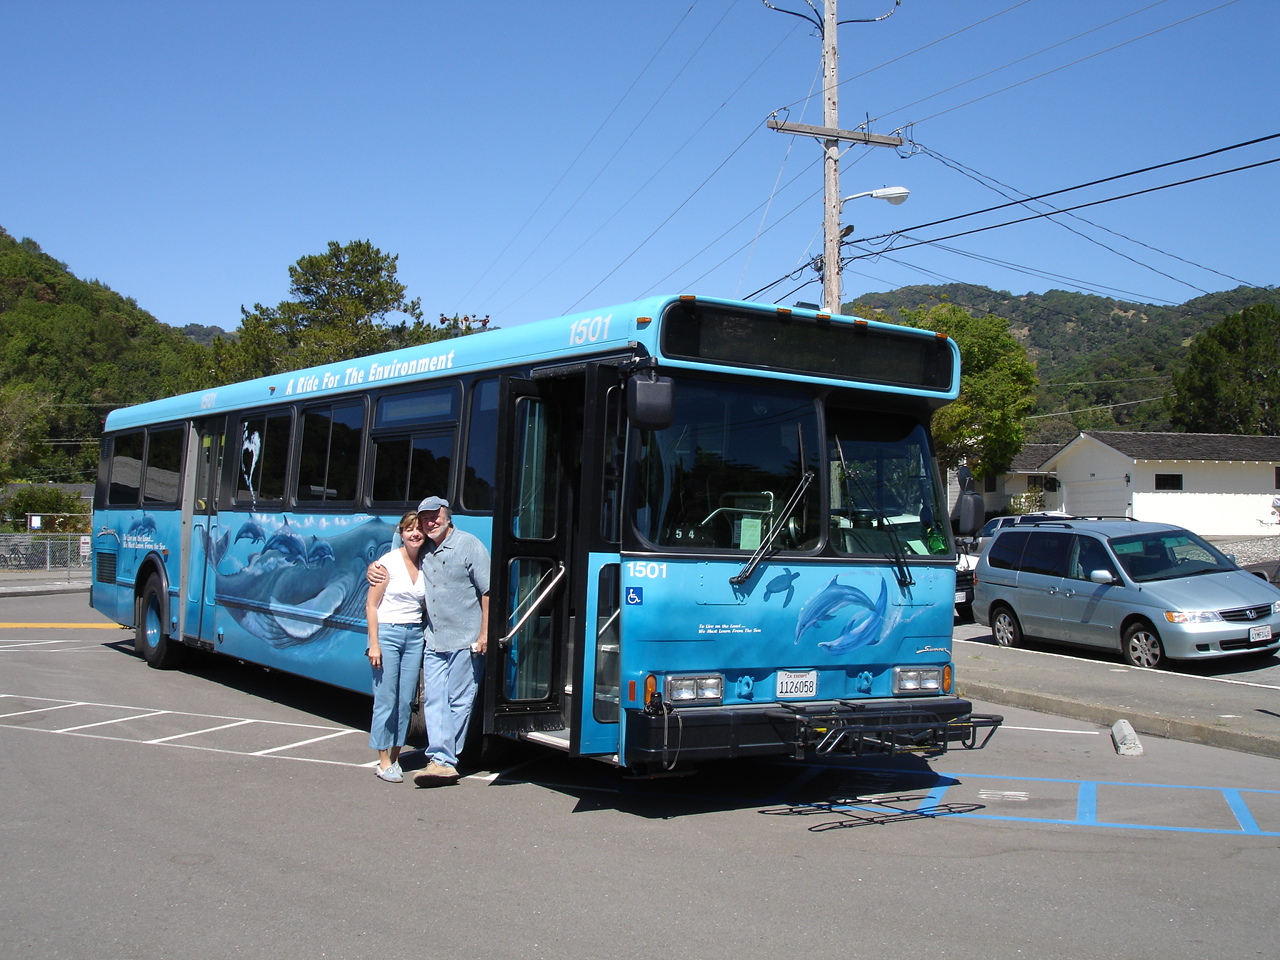 The Whale Bus - Golden Gate Transit - Public Bus handpainted by George and a ongoing visit to public schools  program by Donnalei.jpg